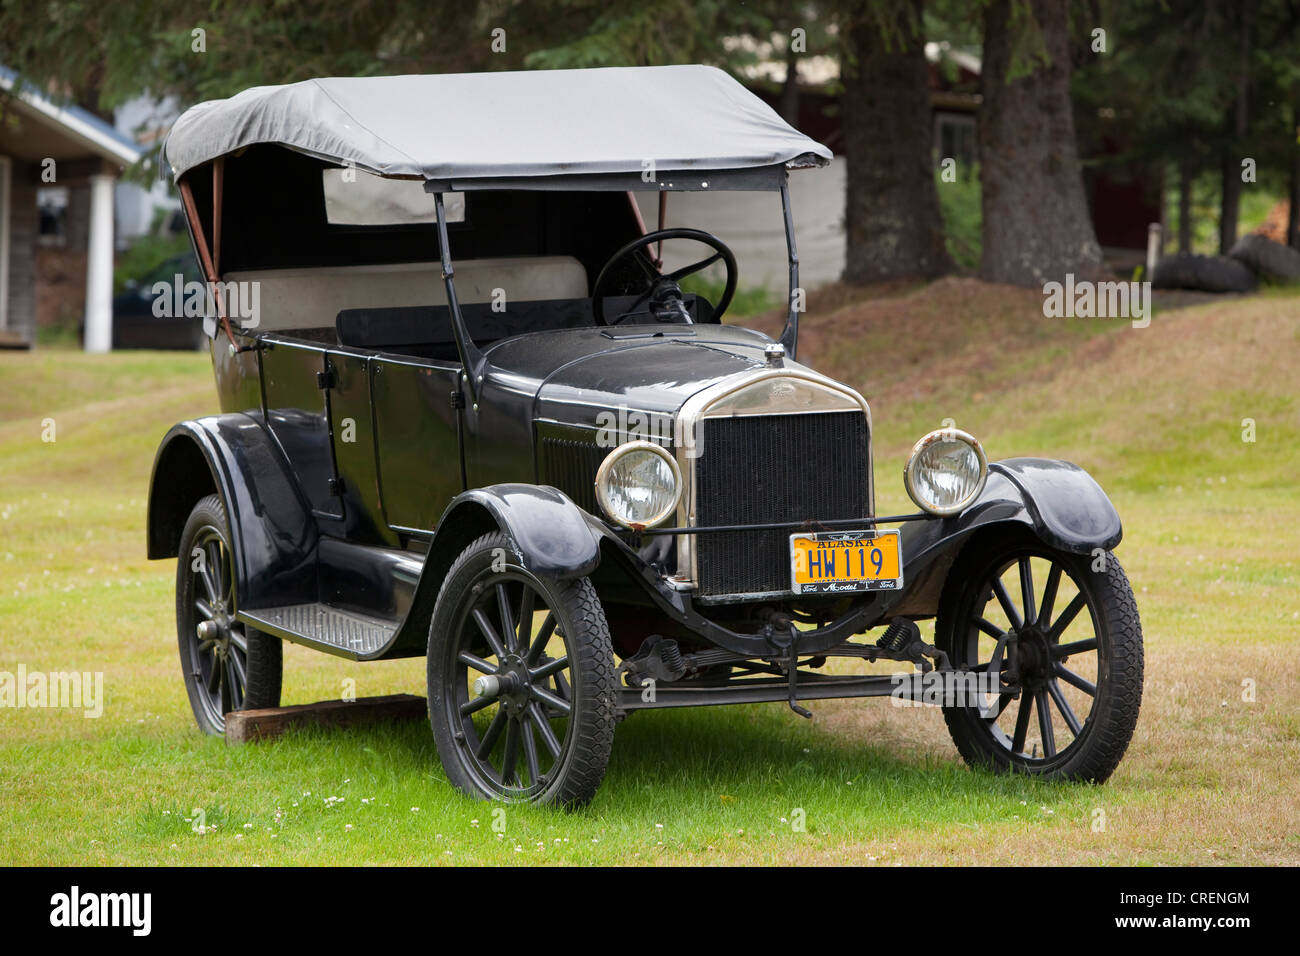 Historic car automobile ford model t tin lizzie flivver stock image